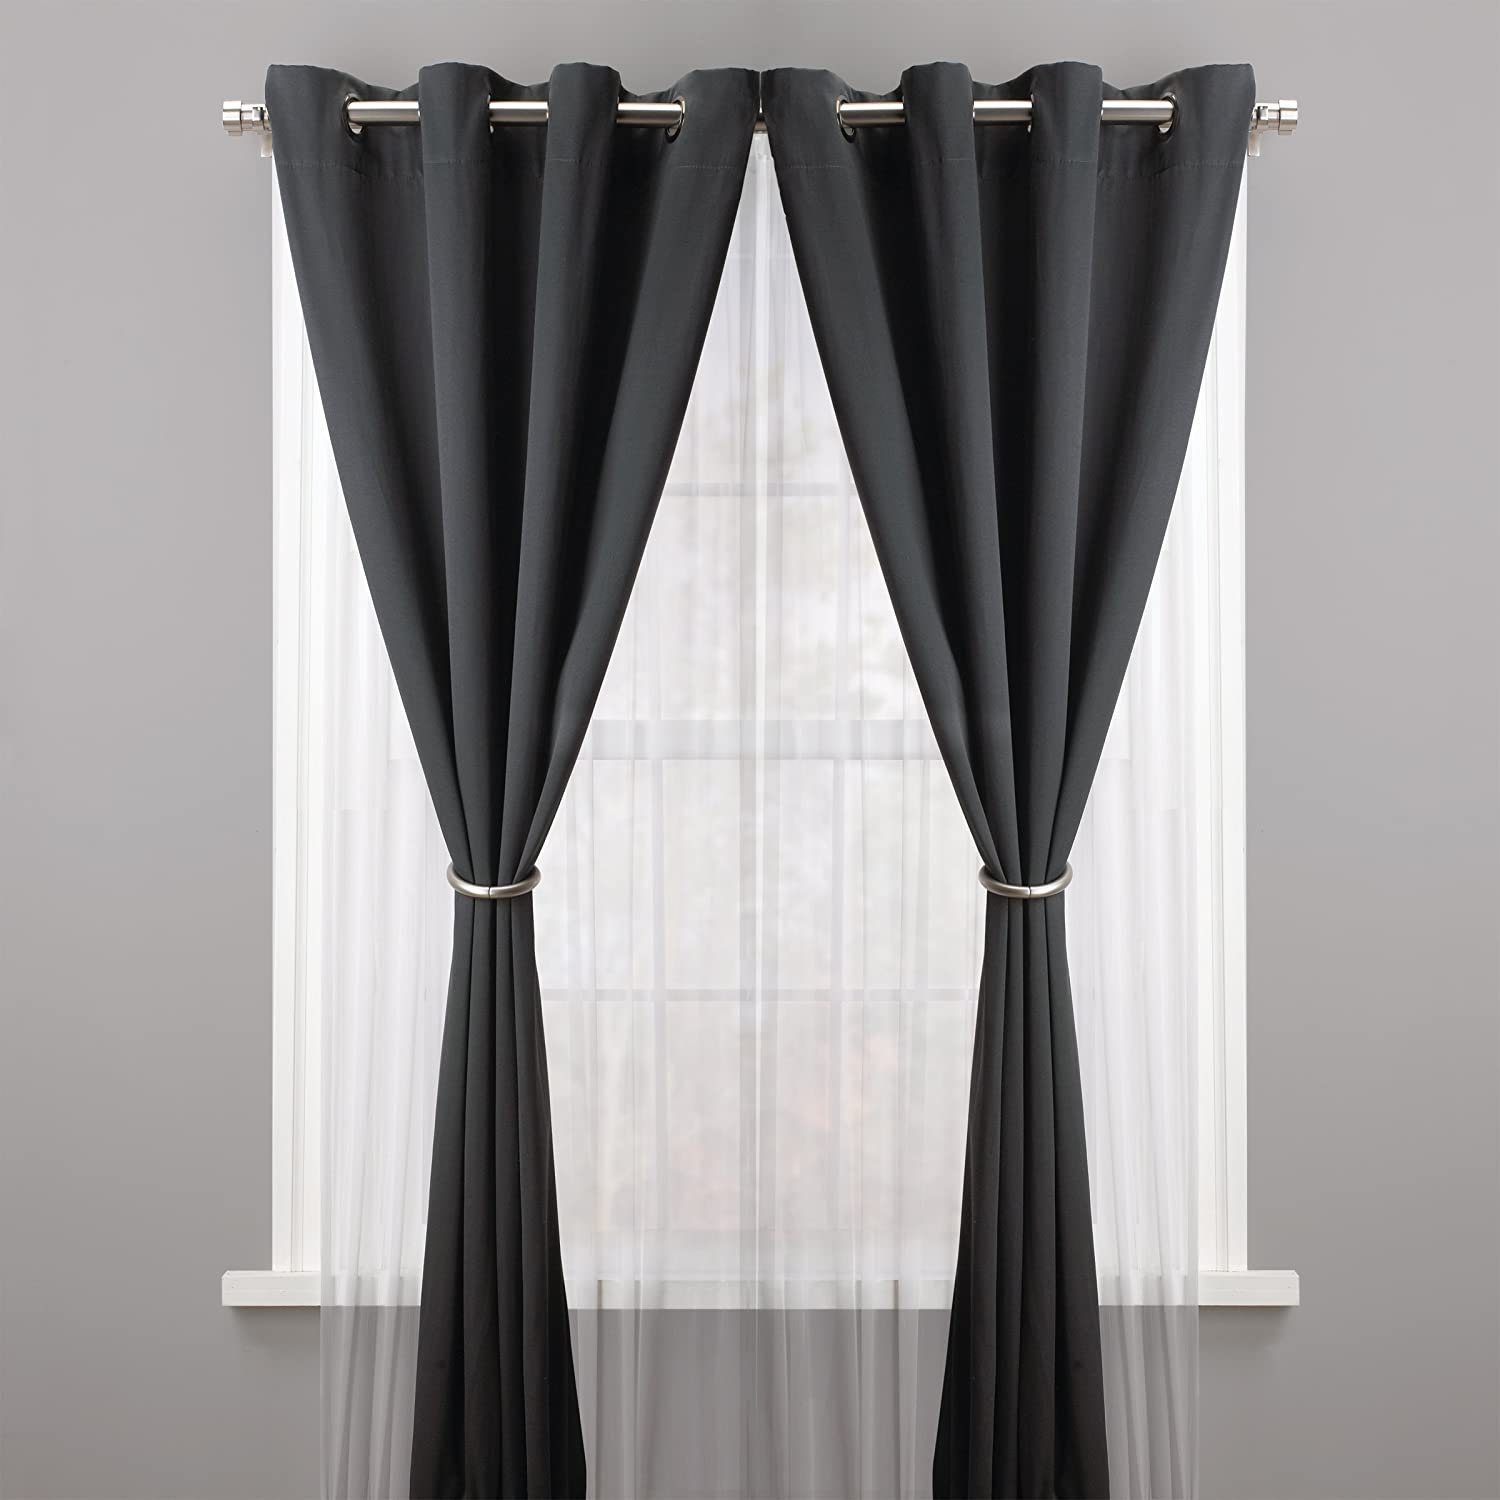 Umbra Halo Drapery Holdback, Metallic Pewter: Amazon.ca: Home U0026 Kitchen